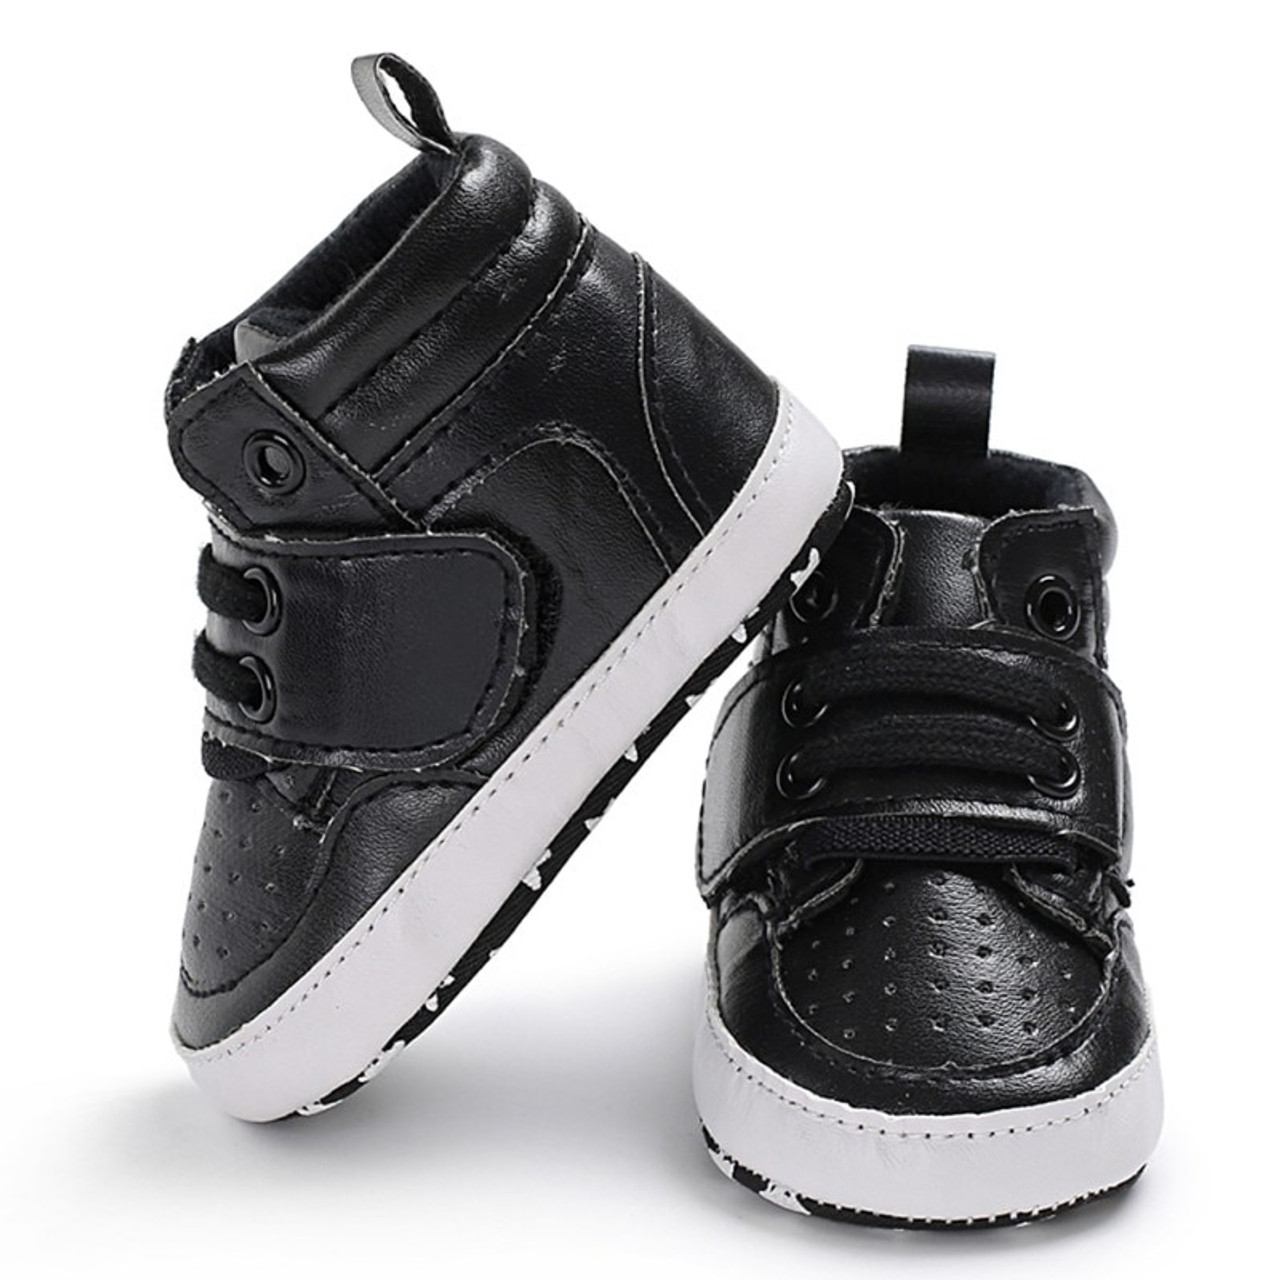 ... Newborn Kids Sneakers Baby Boys Shoes High Top Solid Soft Sole First  Walkers Infant Toddler Antislip ... 04b756db58d3